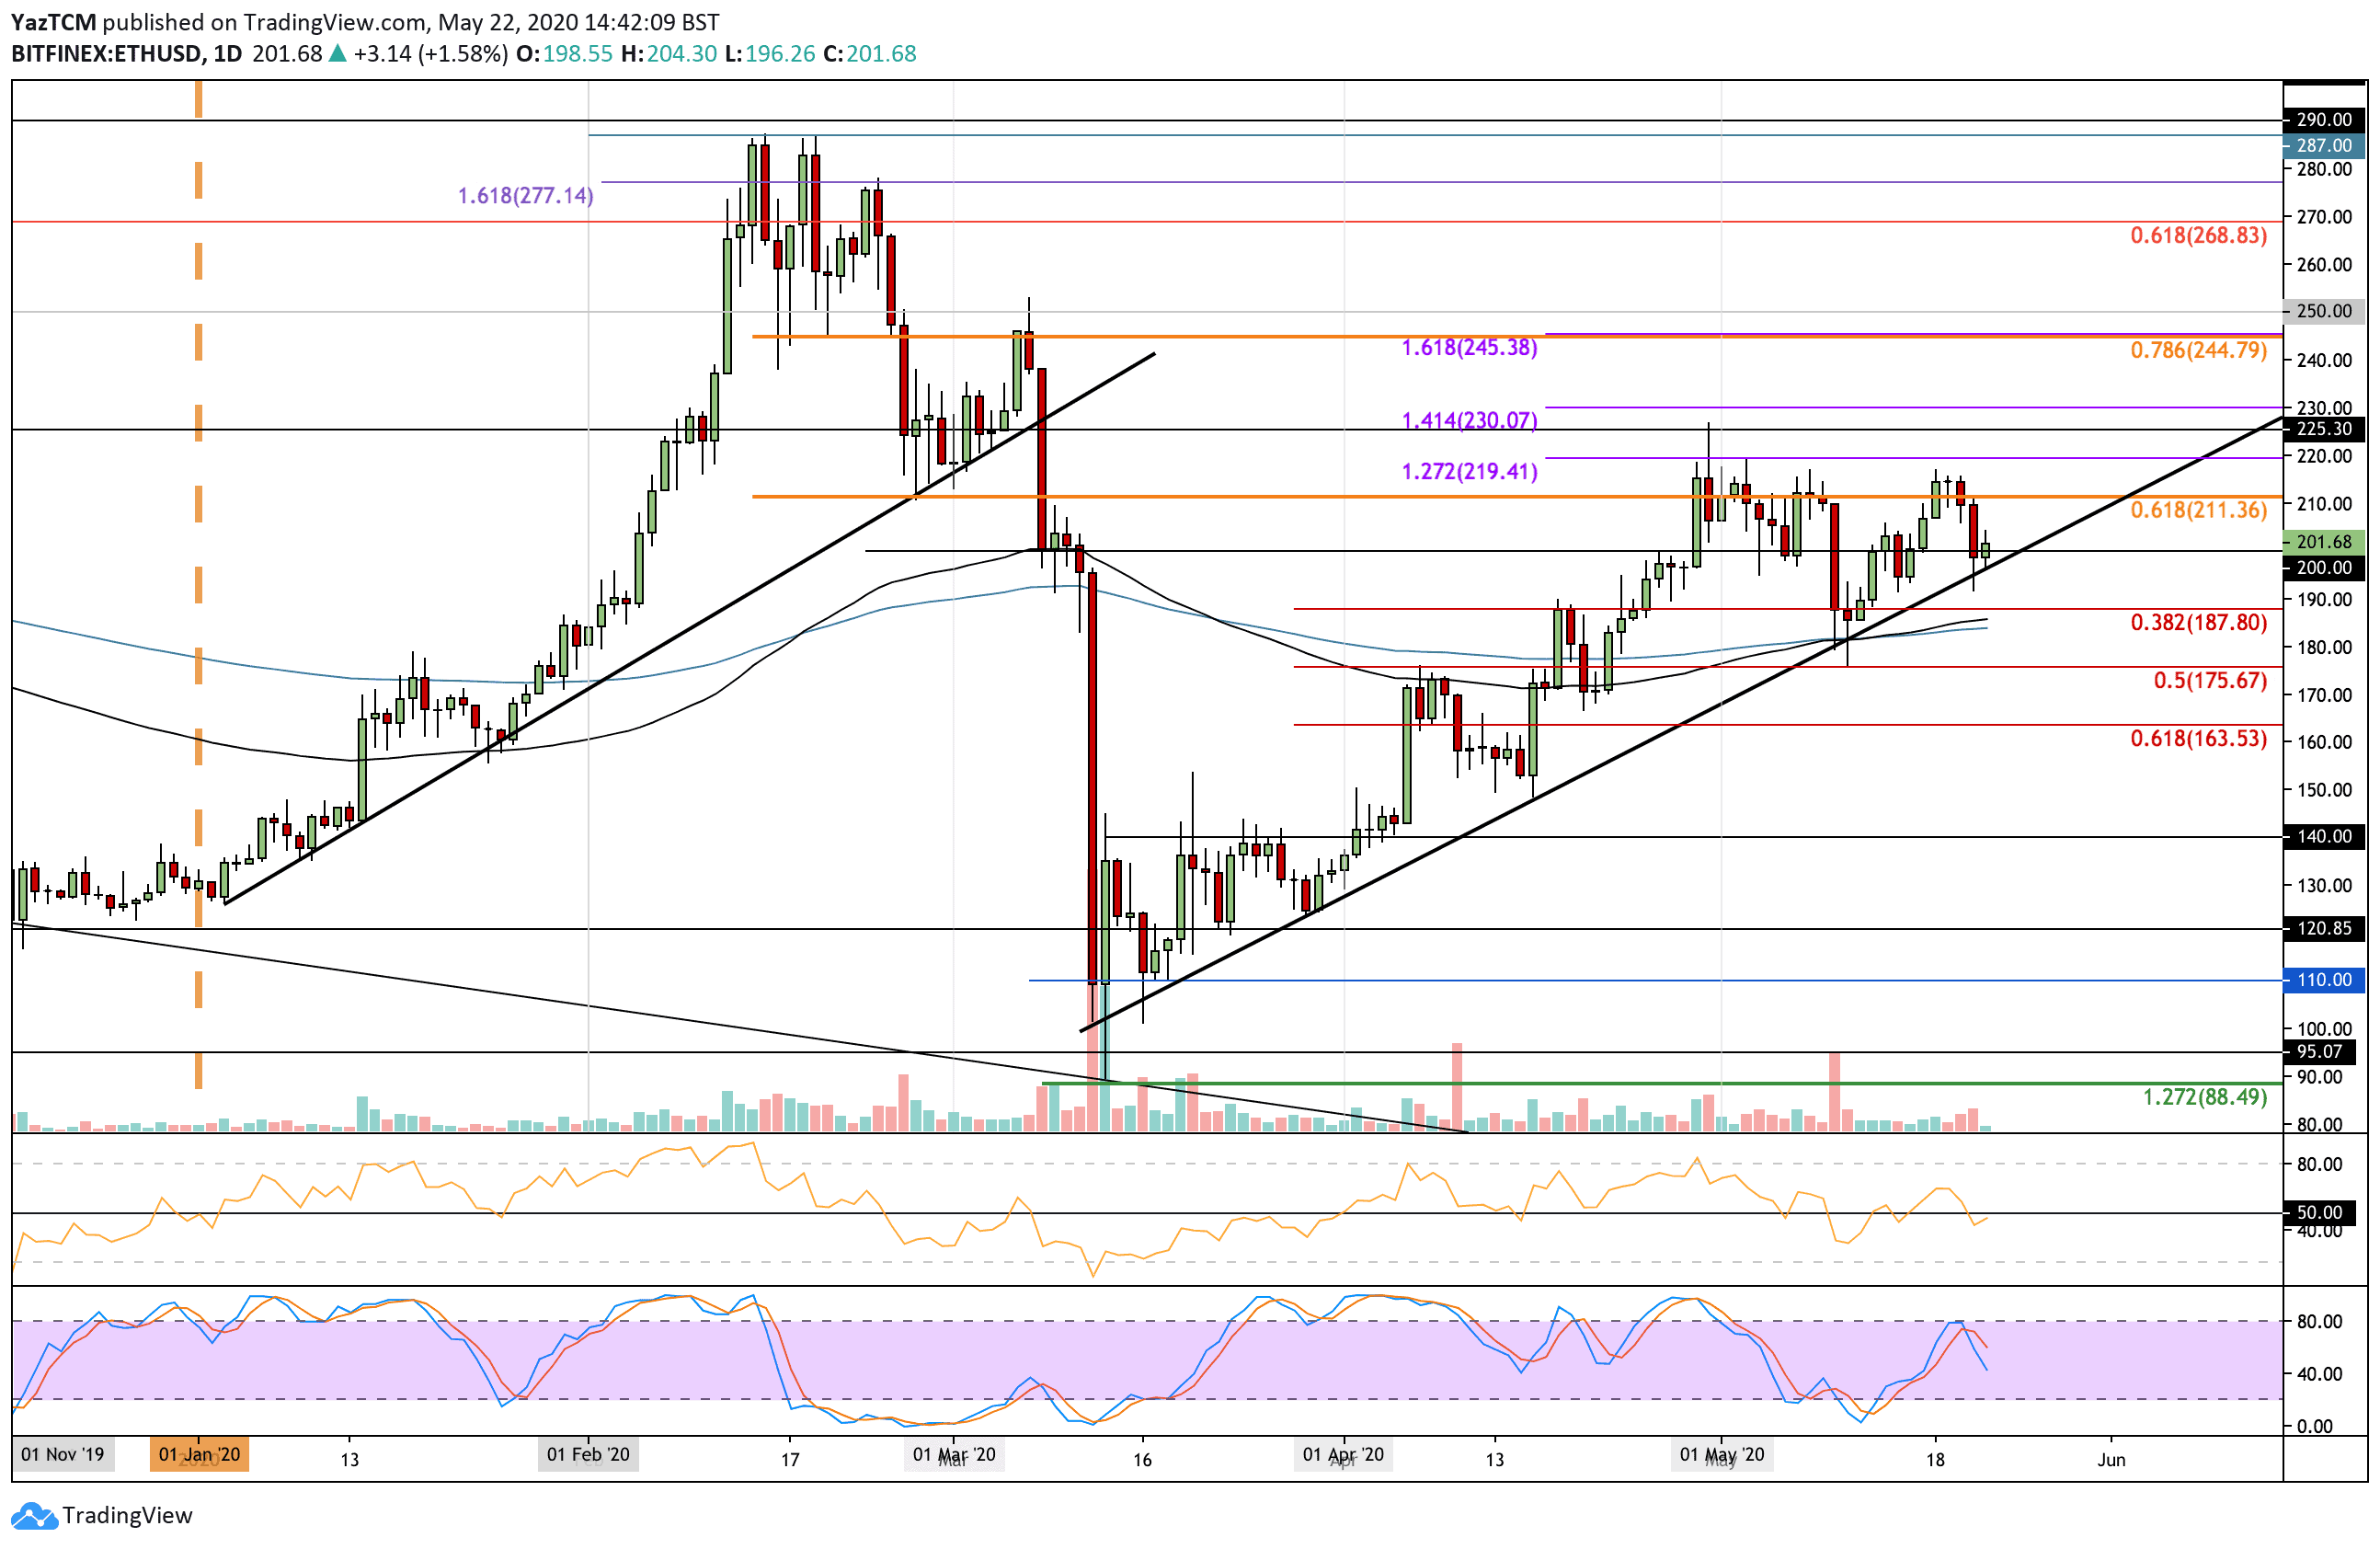 """ethusd-may22 """"width ="""" 2588 """"top ="""" 1684 """"srcset ="""" https://cryptopotato.com/wp-content/uploads/2020/05/ethusd-may22.png 2588w, https://cryptopotato.com/ wp-content / uploads / 2020/05 / ethusd-may22-300x195.png 300w, https://cryptopotato.com/wp-content/uploads/2020/05/ethusd-may22-1024x666.png 1024w, https: // cryptopotato.com/wp-content/uploads/2020/05/ethusd-may22-768x500.png 768w, https://cryptopotato.com/wp-content/uploads/2020/05/ethusd-may22-1536x999.png 1536w, https://cryptopotato.com/wp-content/uploads/2020/05/ethusd-may22-2048x1333.png 2048w, https://cryptopotato.com/wp-content/uploads/2020/05/ethusd-may22-50x33 .png 50w """"data-lazy-size ="""" (max-width: 2588px) 100vw, 2588px """"src ="""" https://cryptopotato.com/wp-content/uploads/2020/05/ethusd-may22.png """"/ ><noscript><img class="""